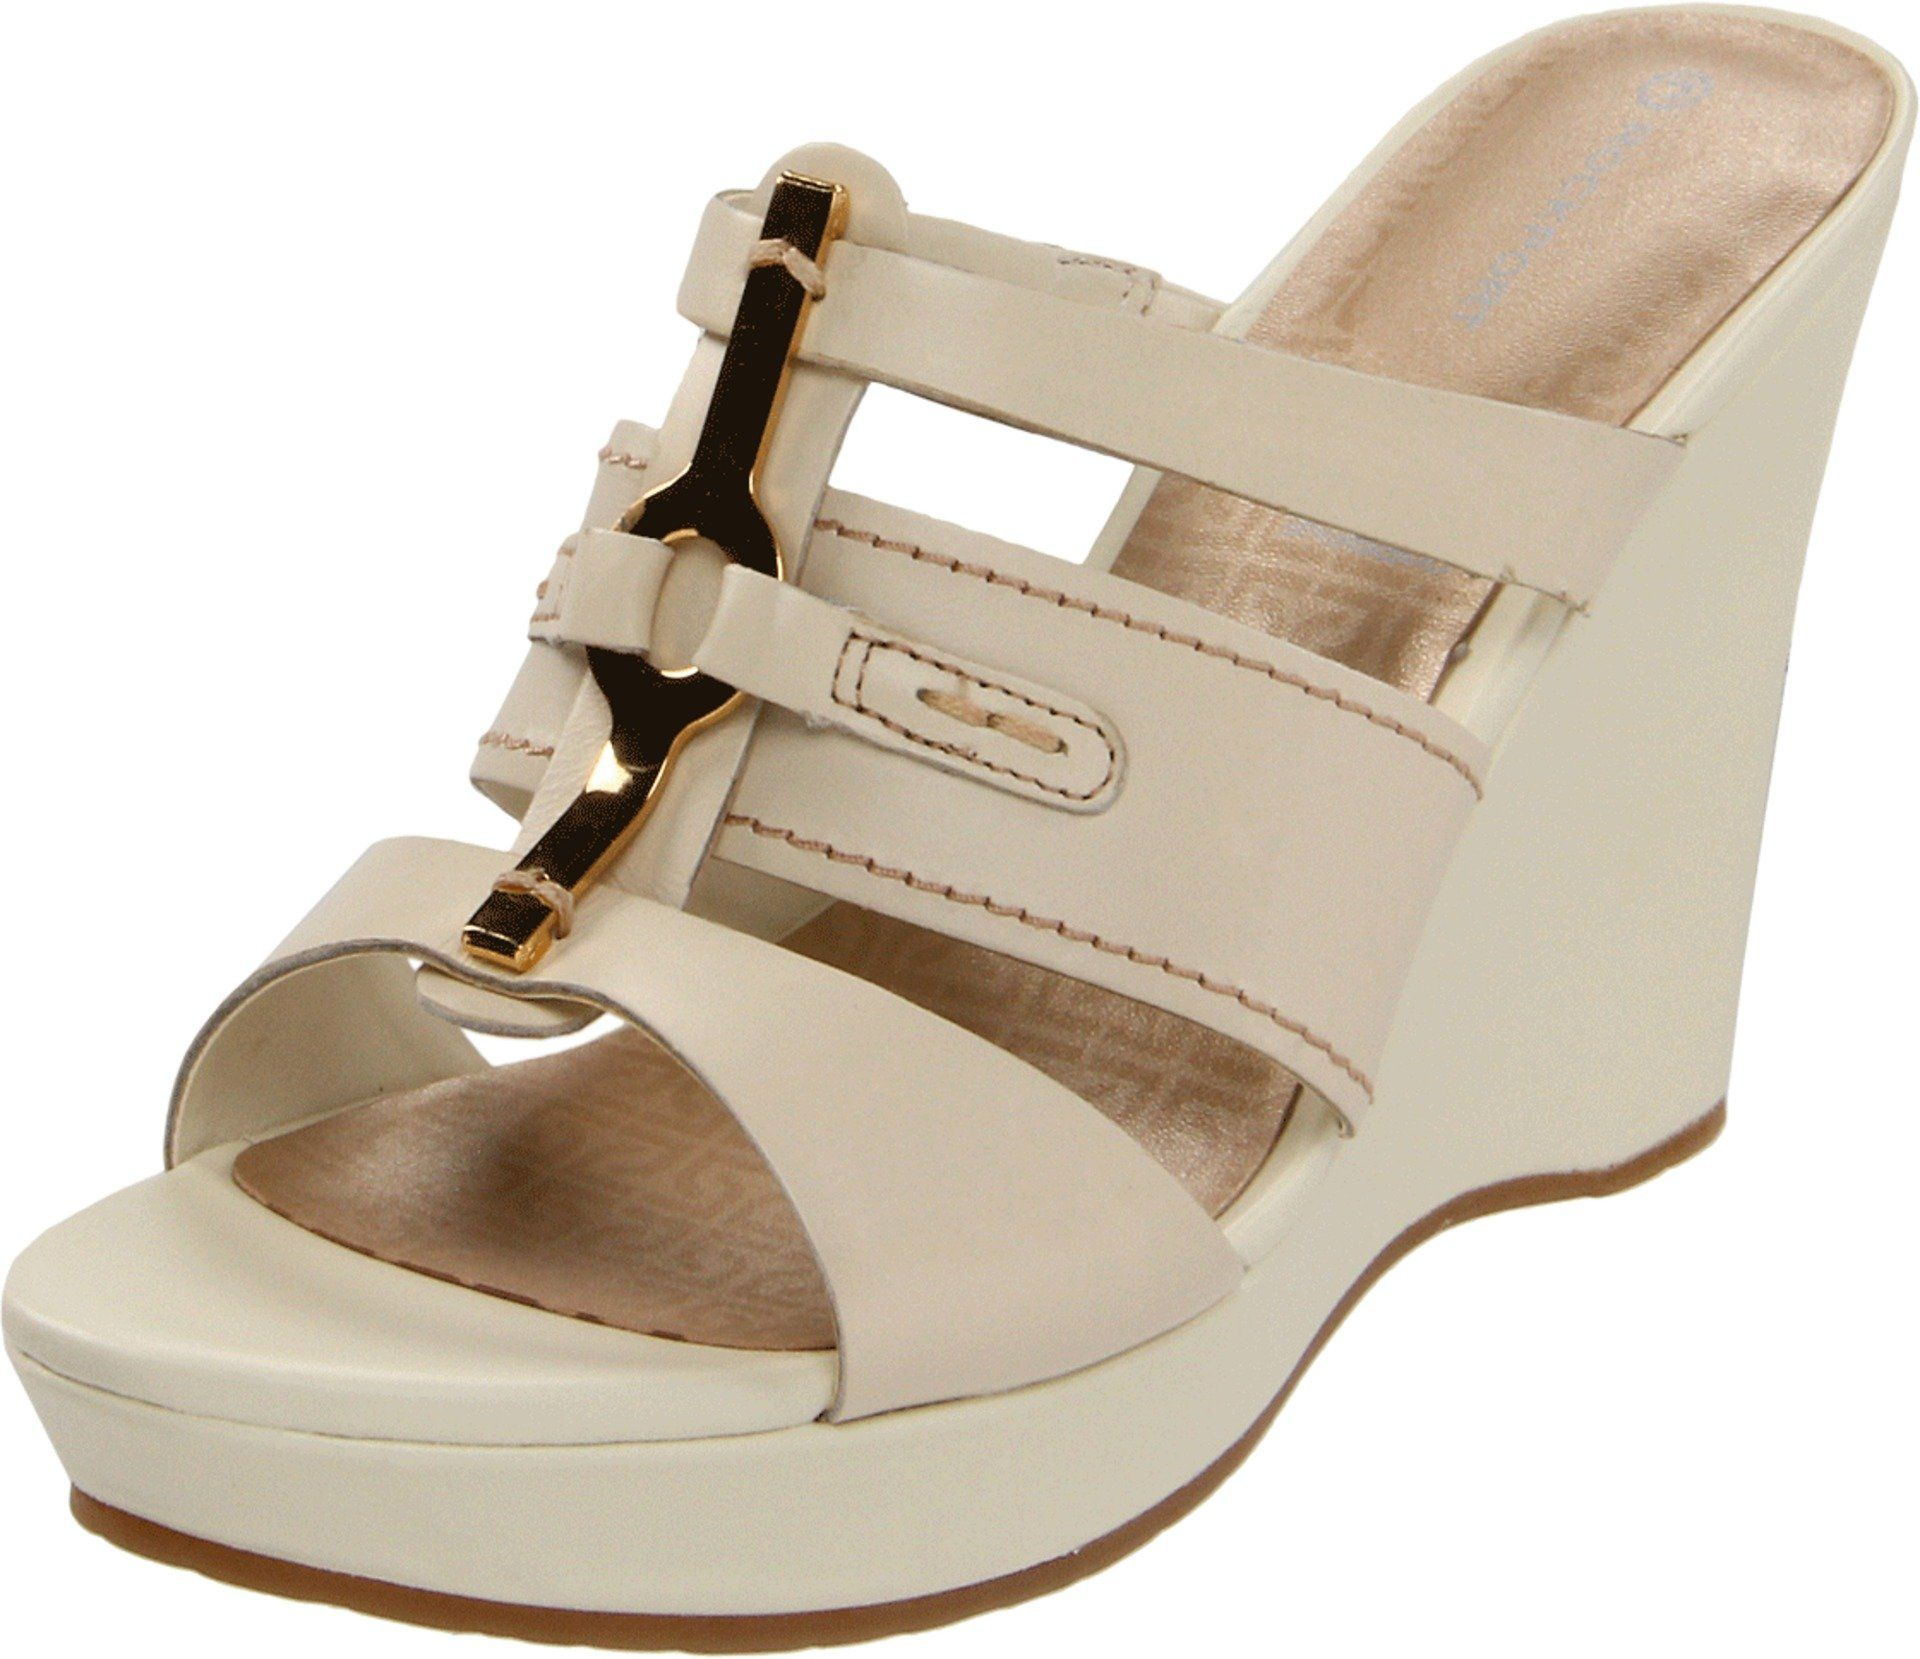 Rockport Women's Locklyn 3 Band Wedge Sandal, Cream, 9 M US. Full grain leather is durable and easy to clean^Breathable polyurethane cusioning for moisture absorption.